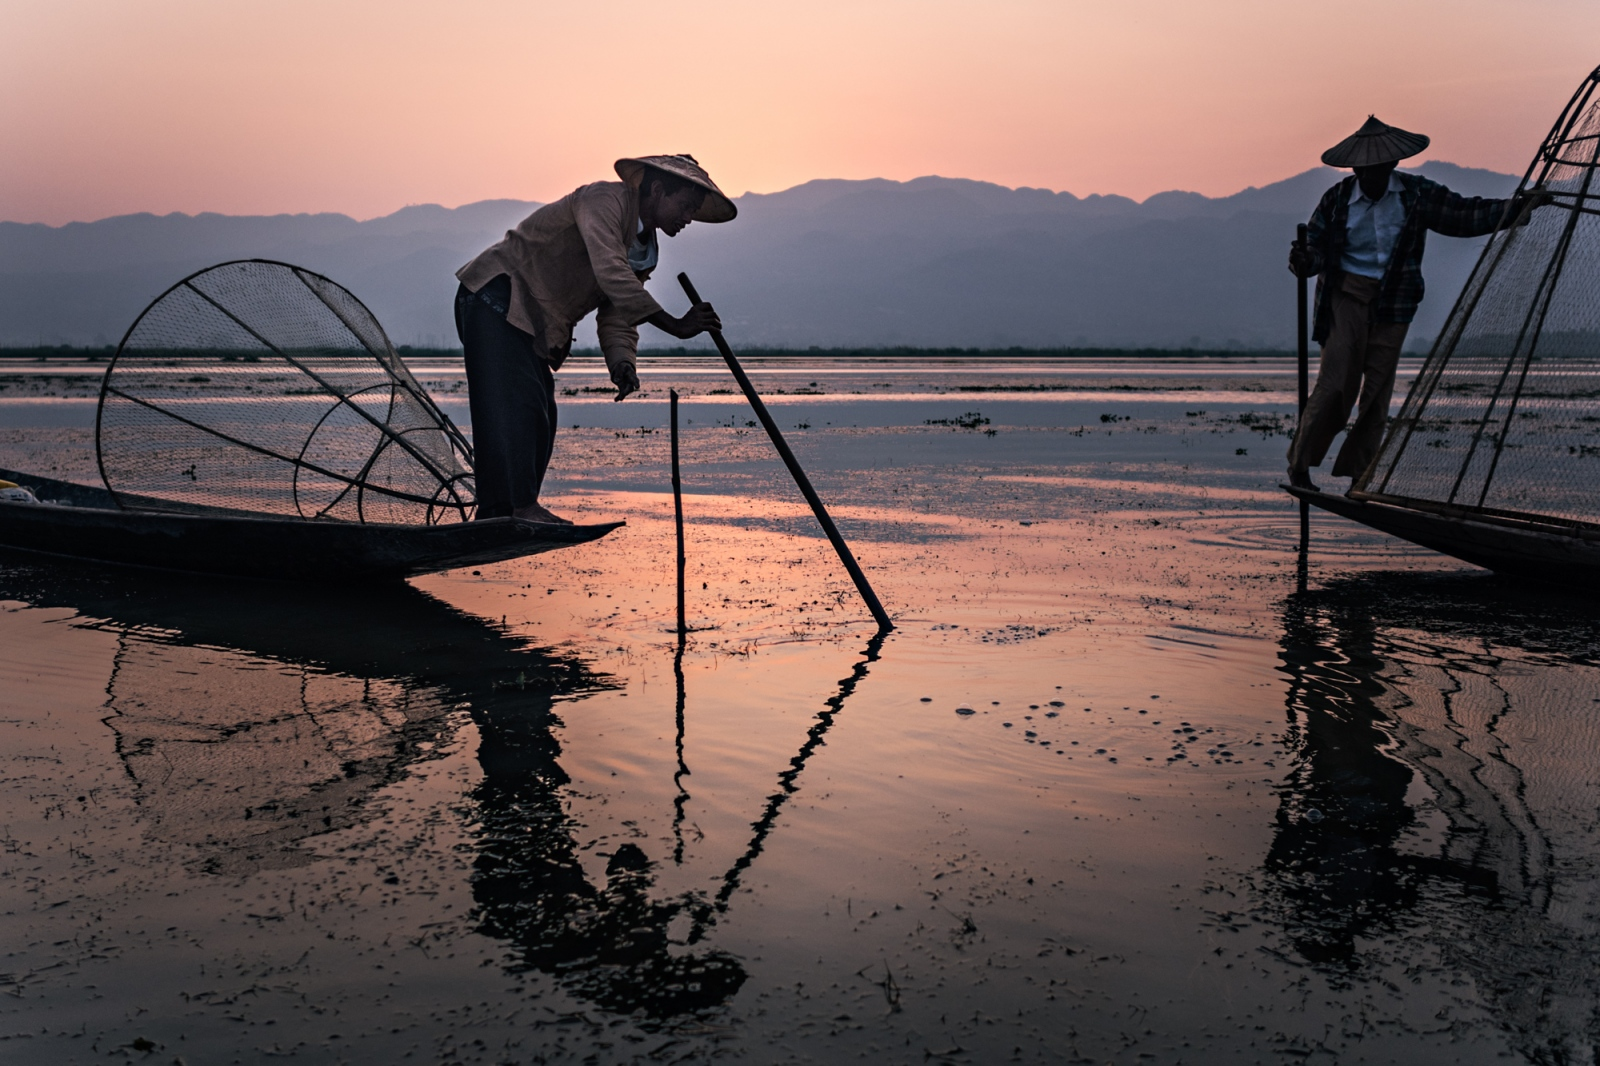 Intha fishermen demonstrate traditional fishing methods at dawn on Inle Lake. Due to shrinking lake size, over fishing, pollution and the price of living, traditional methods of fishing are no longer viable in earning a living and are only practiced for show.